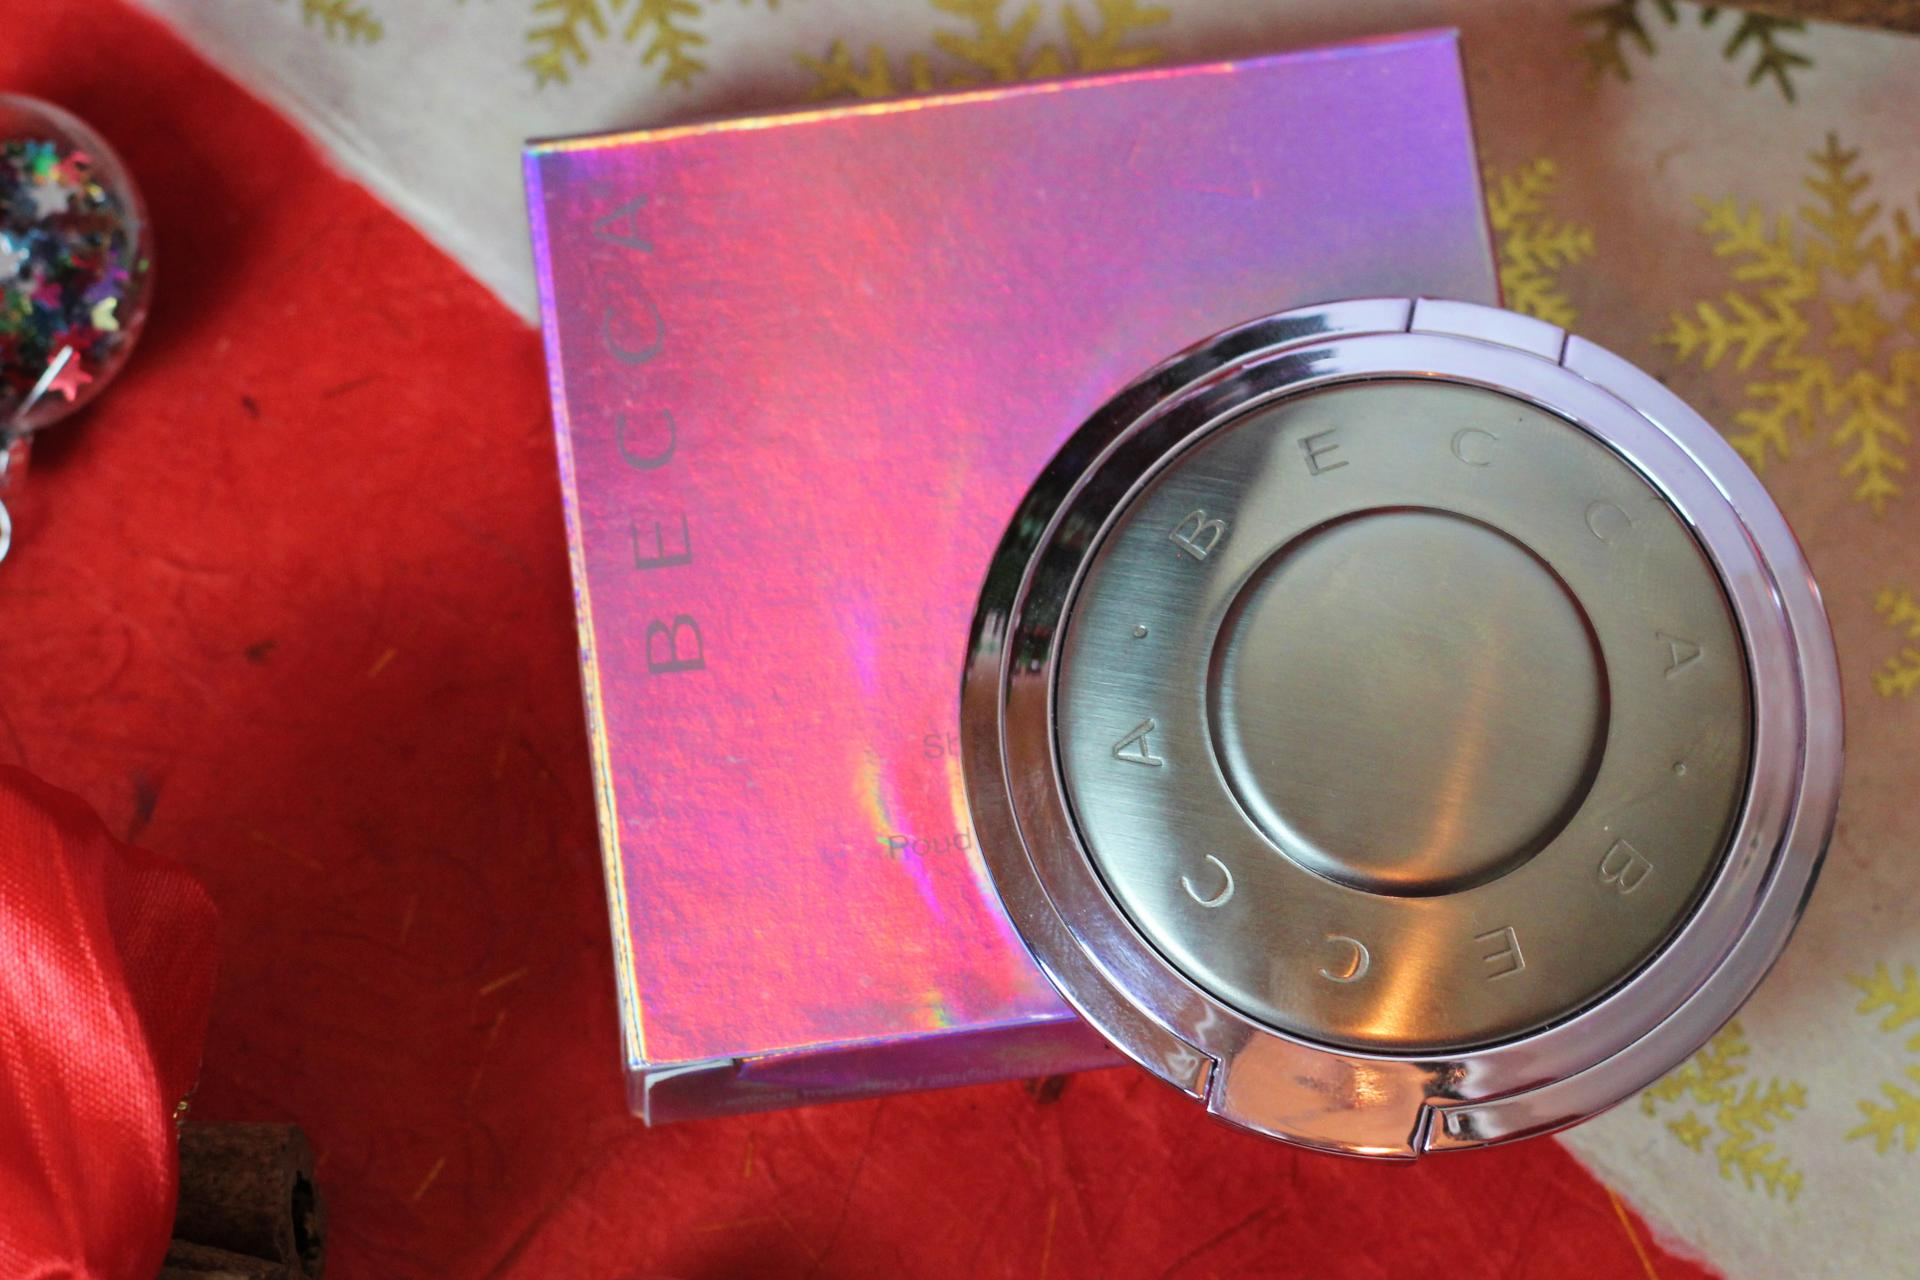 MAC Here Comes Joy NARS man ray By Terry Flash Light compact Too Faced Ray of Light Becca Prismatic Amethyst